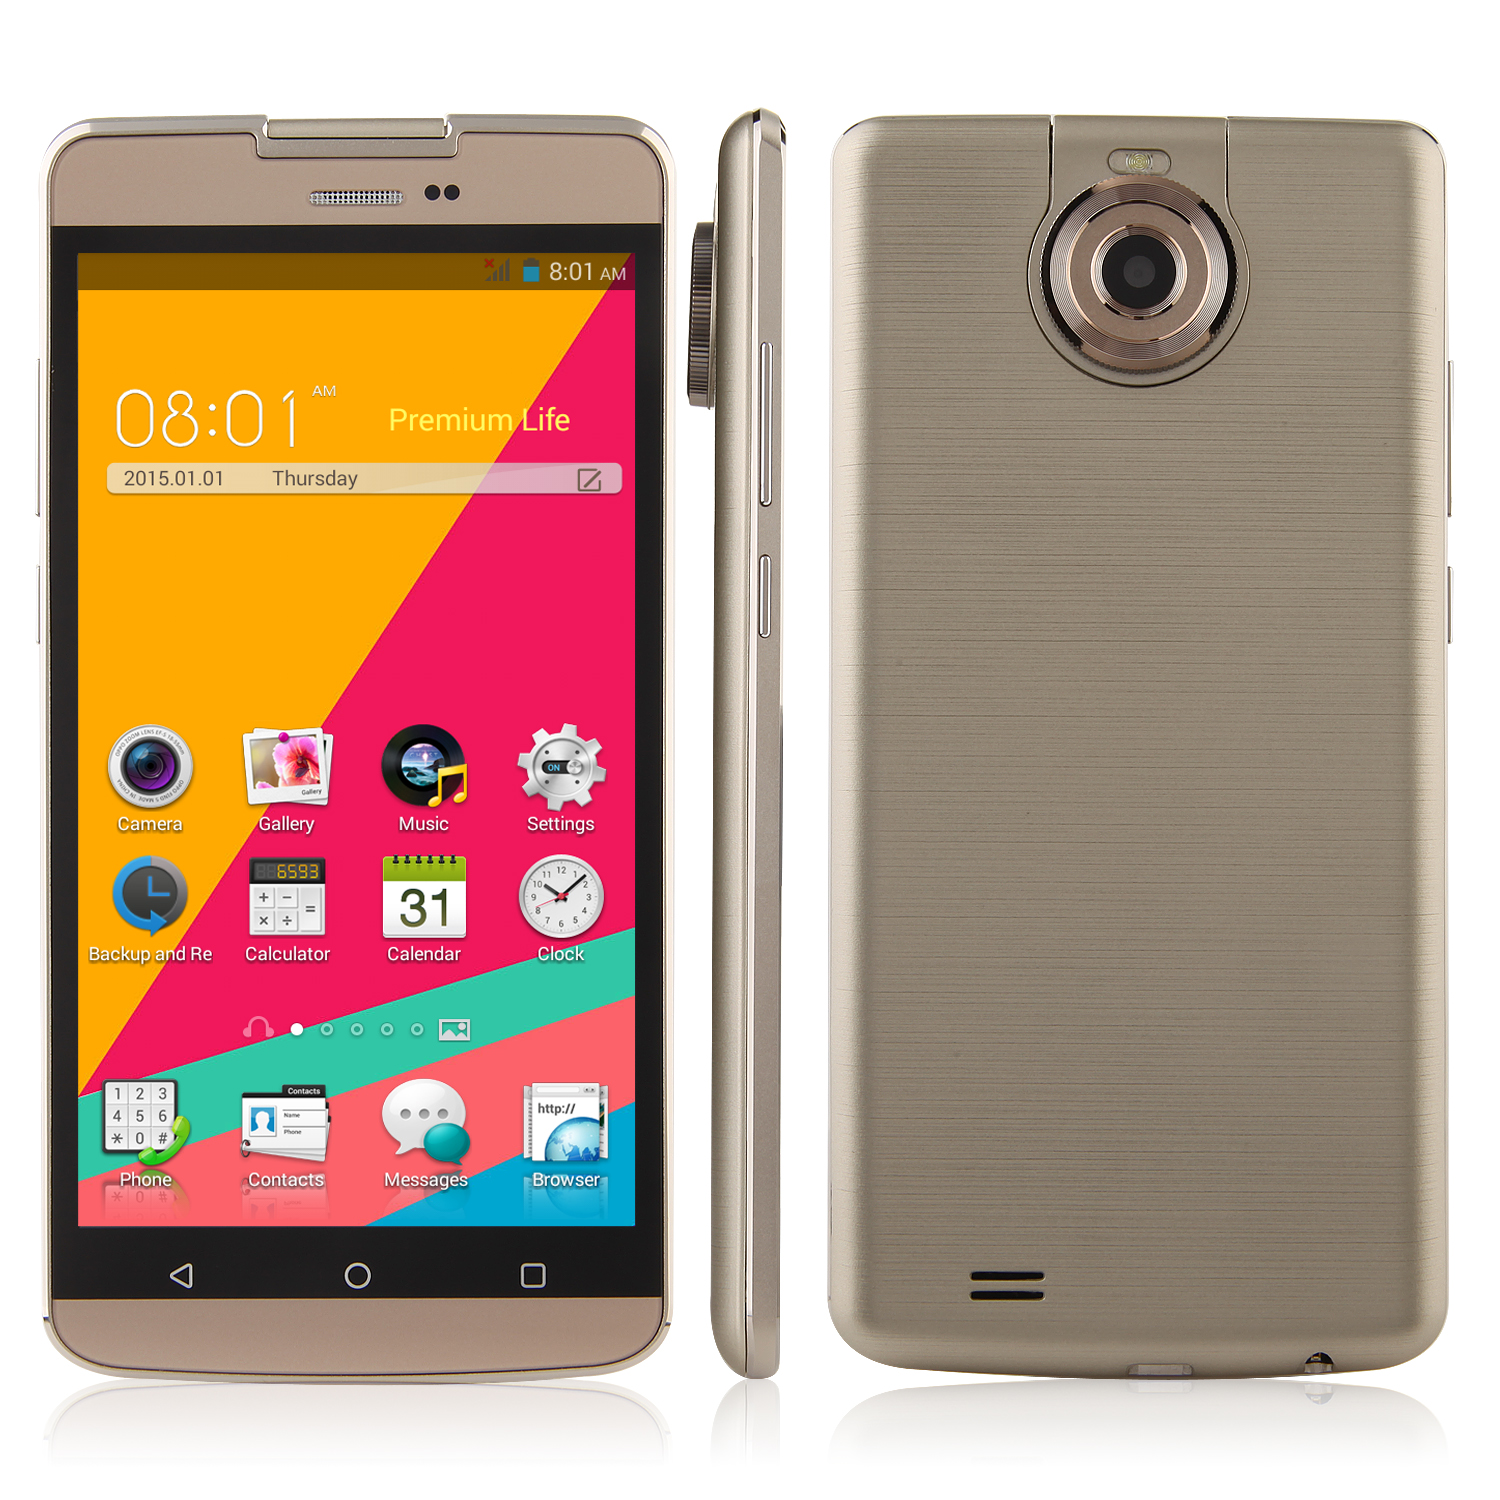 Tengda S8 Smartphone 5.5 Inch QHD Screen MTK6572W Android 4.4 Rotatable Camera Gold